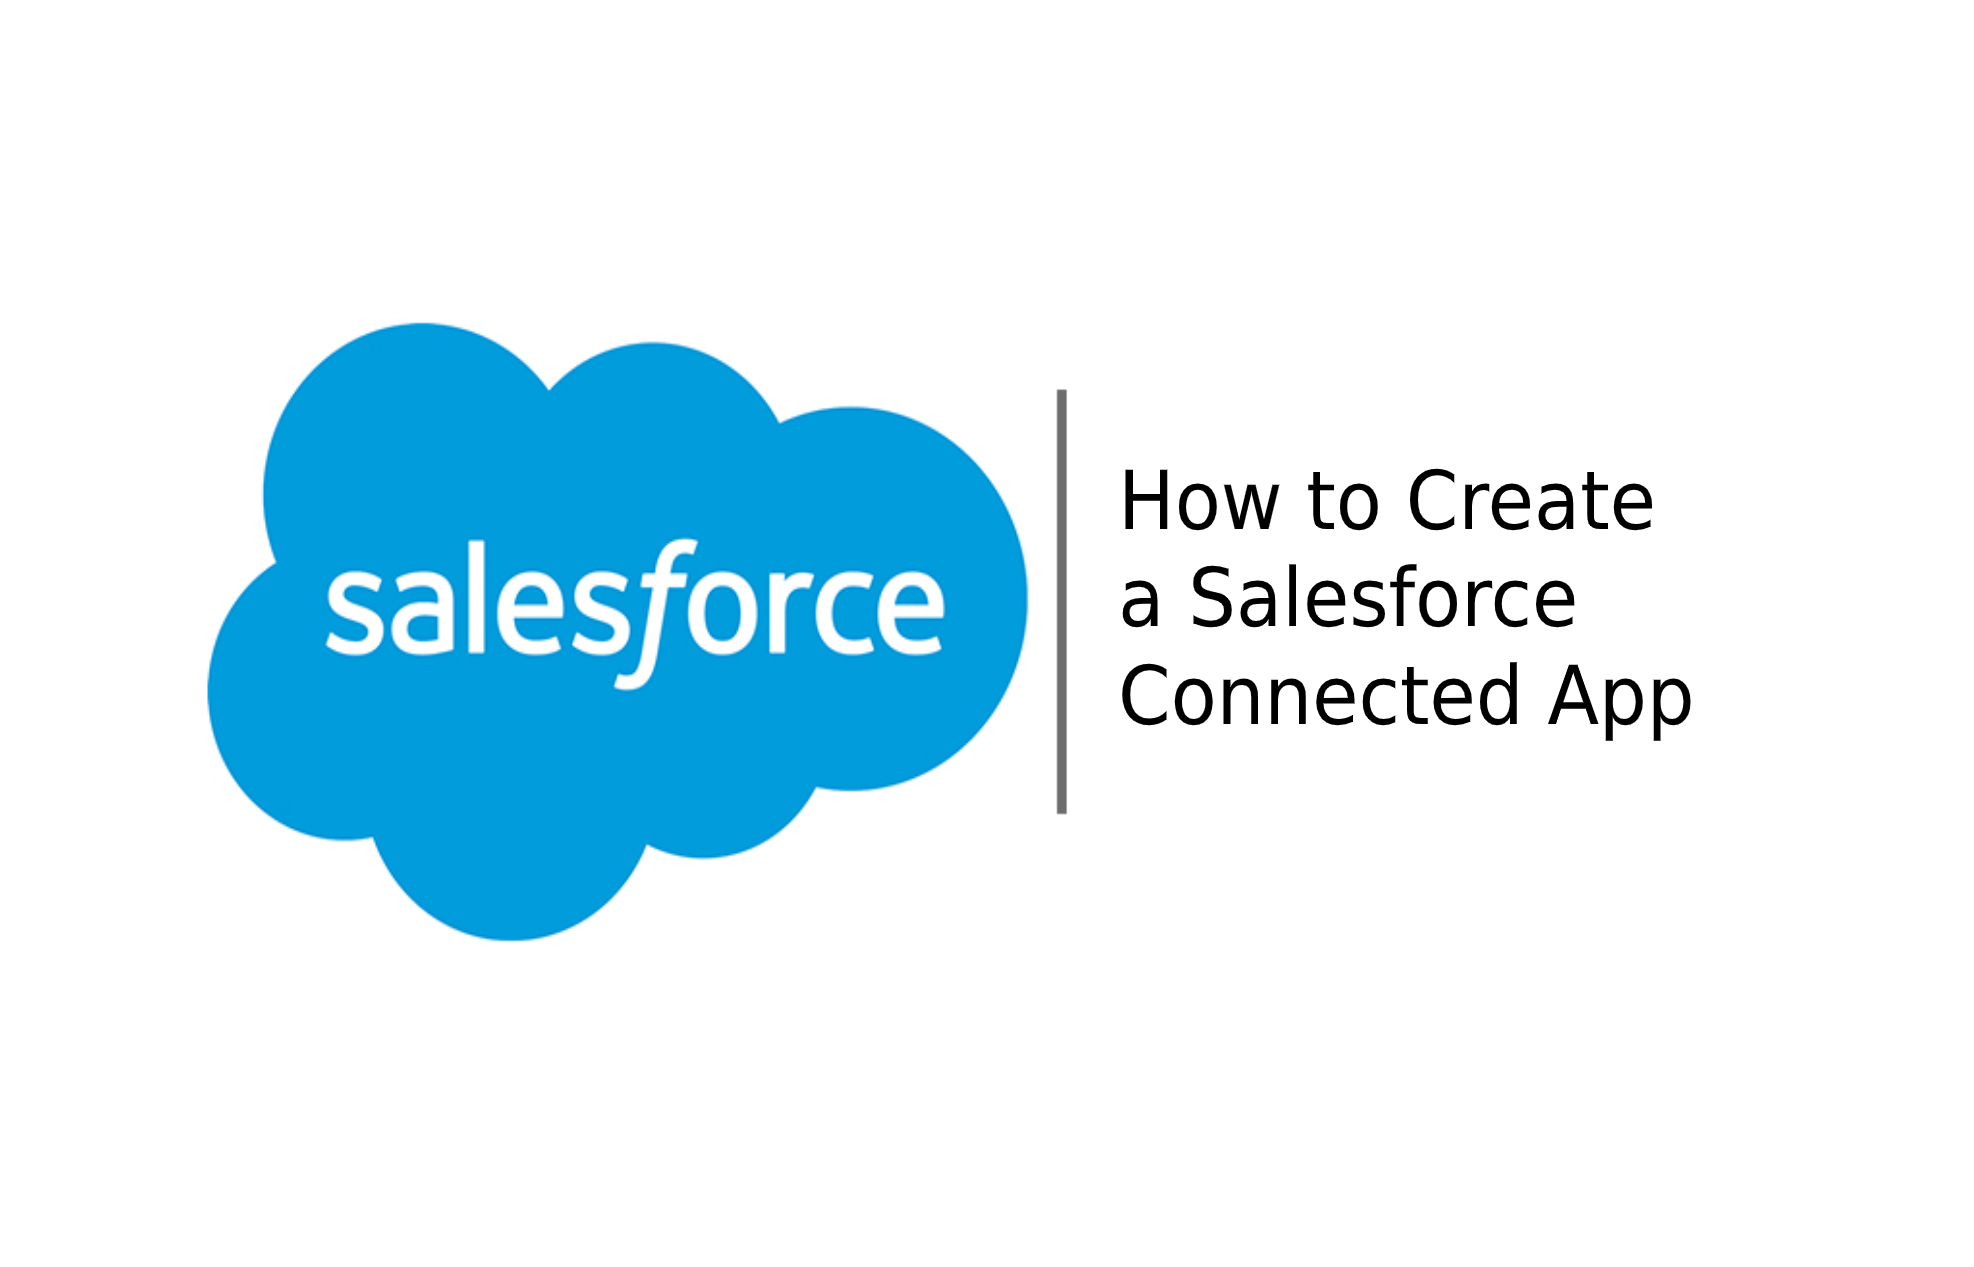 how to create connected appp salesforce